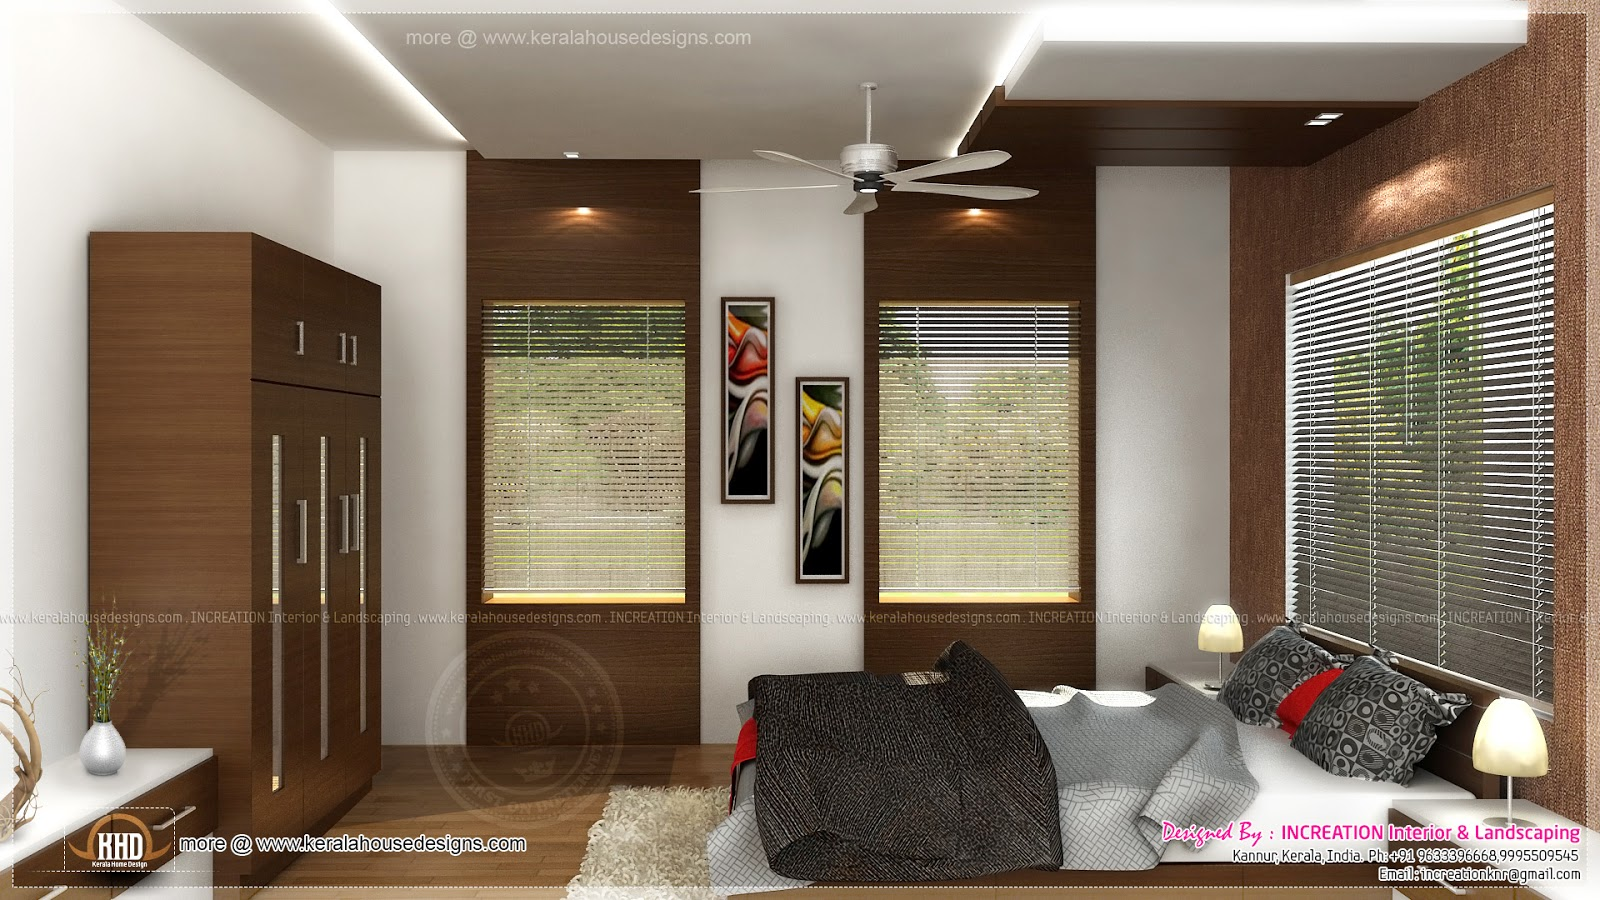 Interior designs from kannur kerala home kerala plans - Interior design home ...